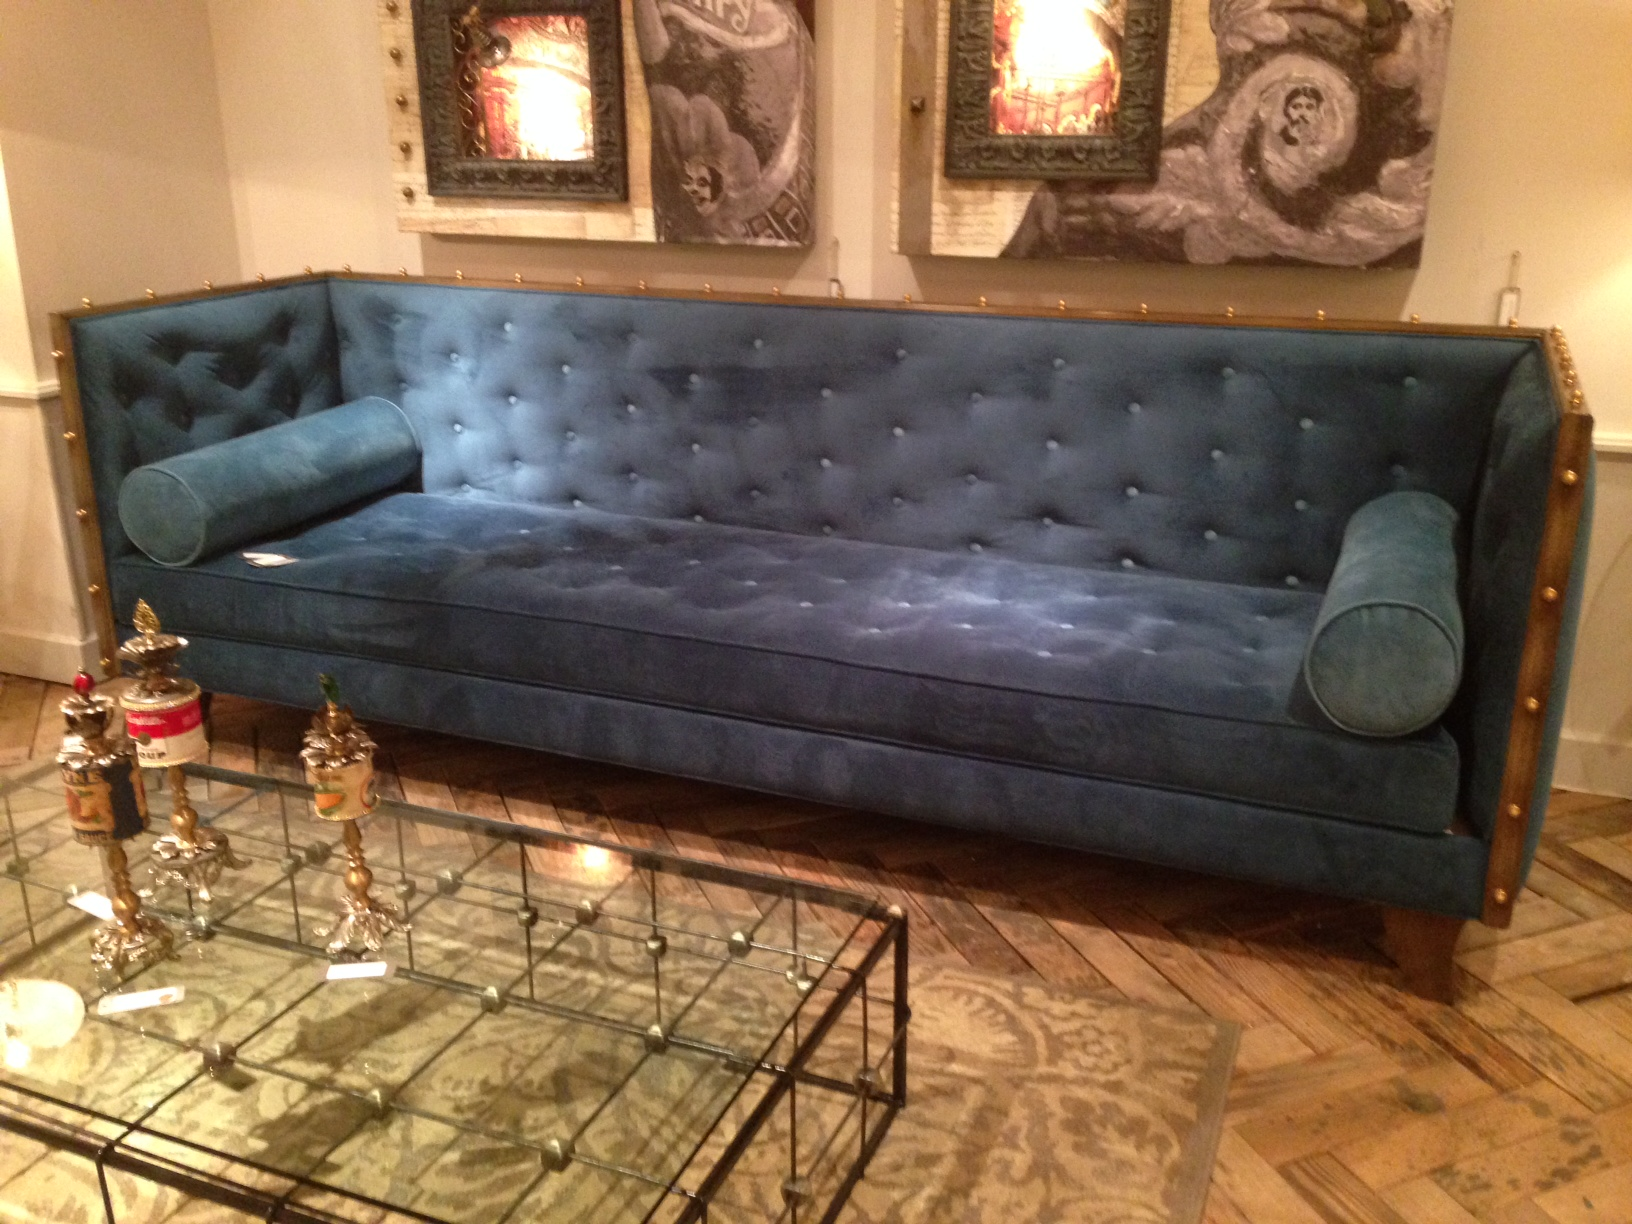 Gorgeous over-scaled peacock Sofa from Luna Bella. Perfect for a loft or a chic bar.